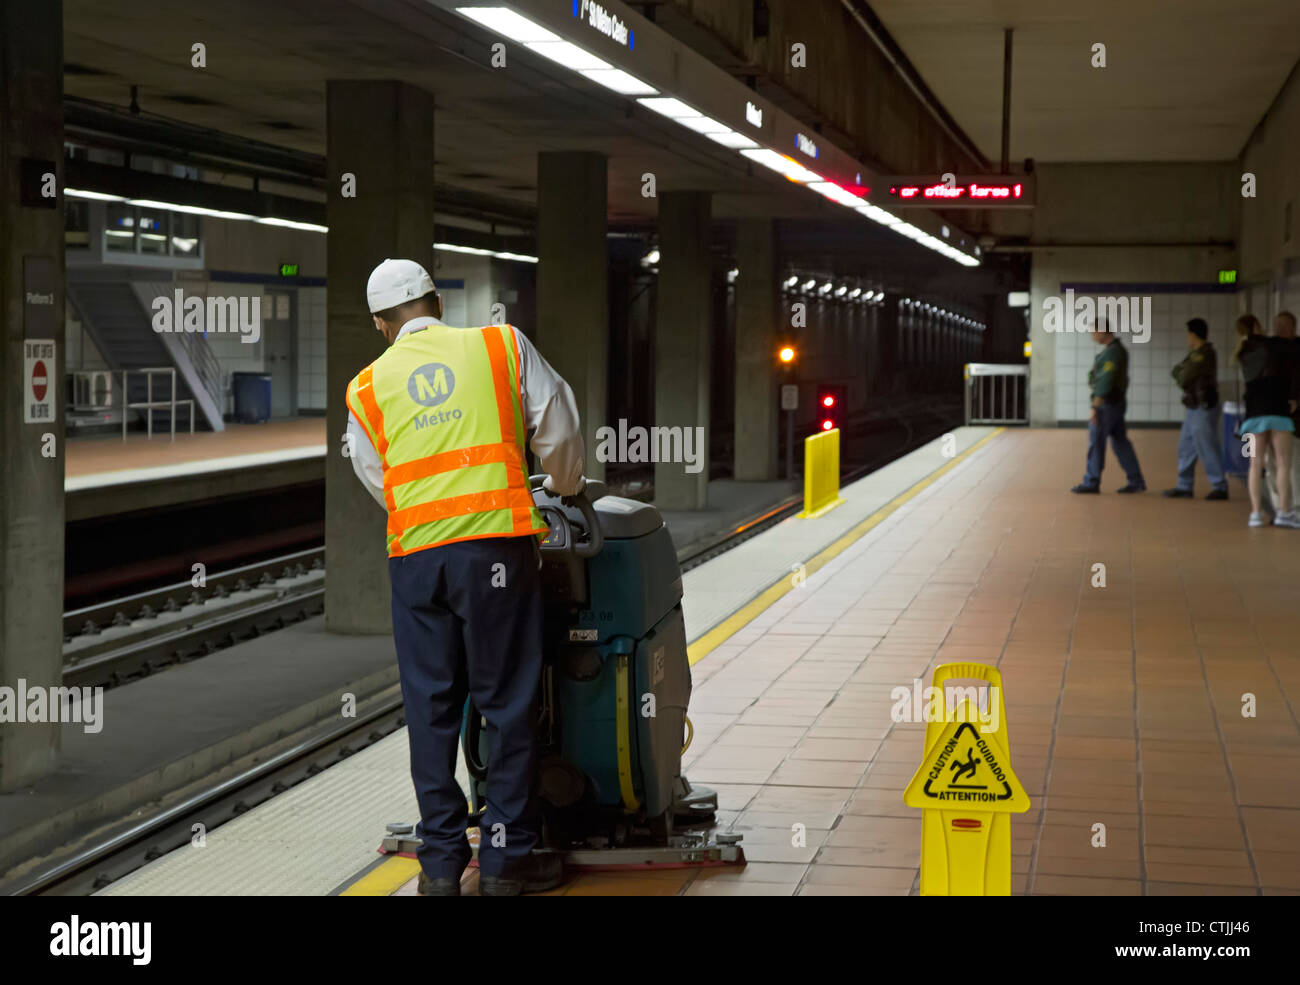 Los Angeles, California - A worker cleans the platform in a subway station of the Los Angeles Metro rail system. - Stock Image